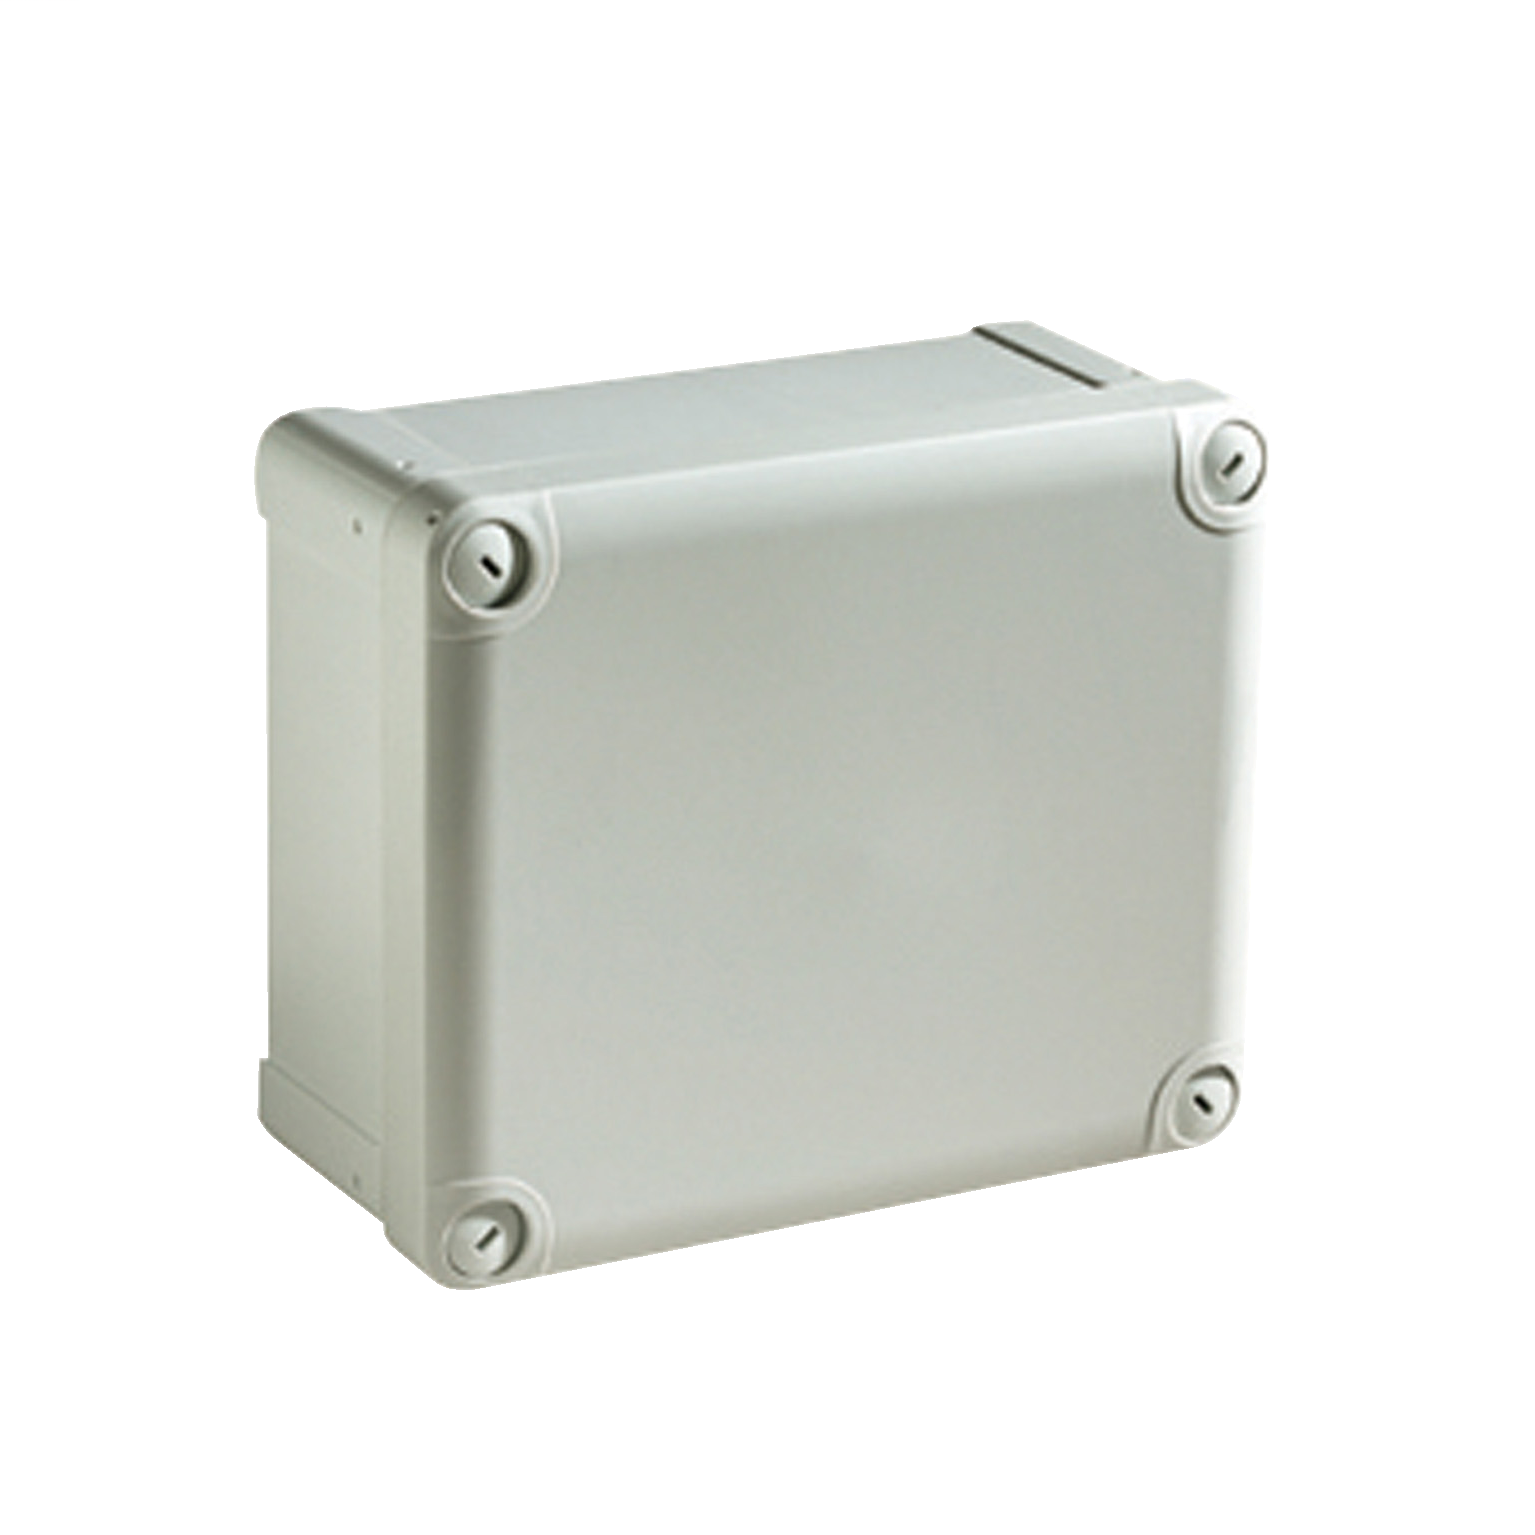 SCHNEIDER ELECTRIC ABS box IP66 IK07 RAL7035 Int.H105W105D55 Ext.H116W116D62 Opaque cover H10